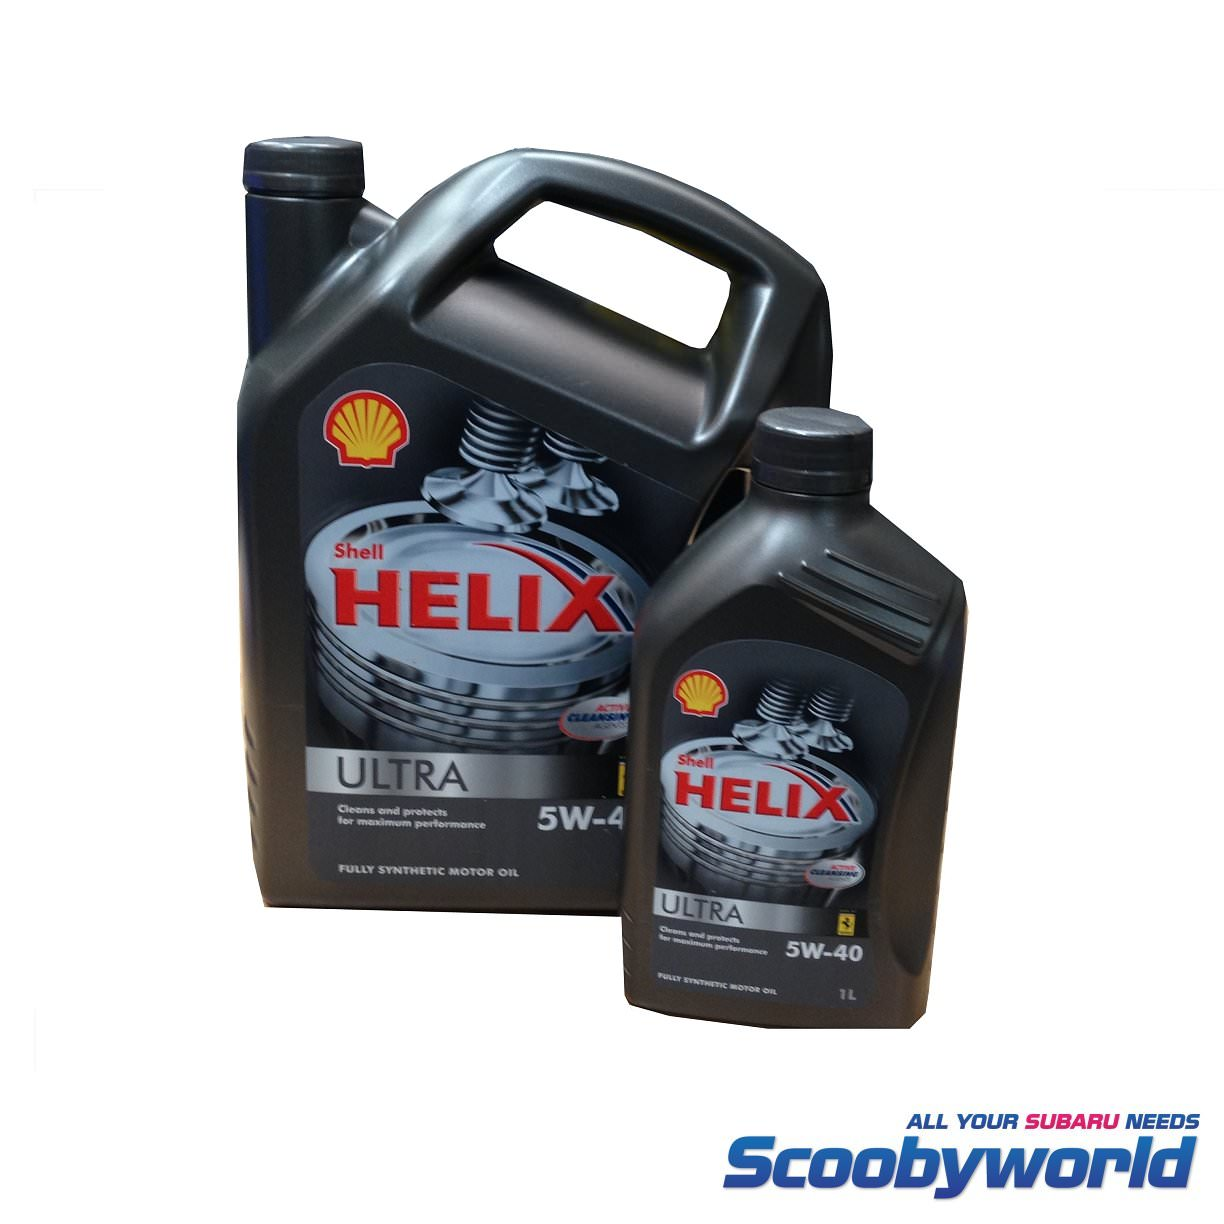 scoobyworld shell helix ultra 5w 40 fully synthetic. Black Bedroom Furniture Sets. Home Design Ideas